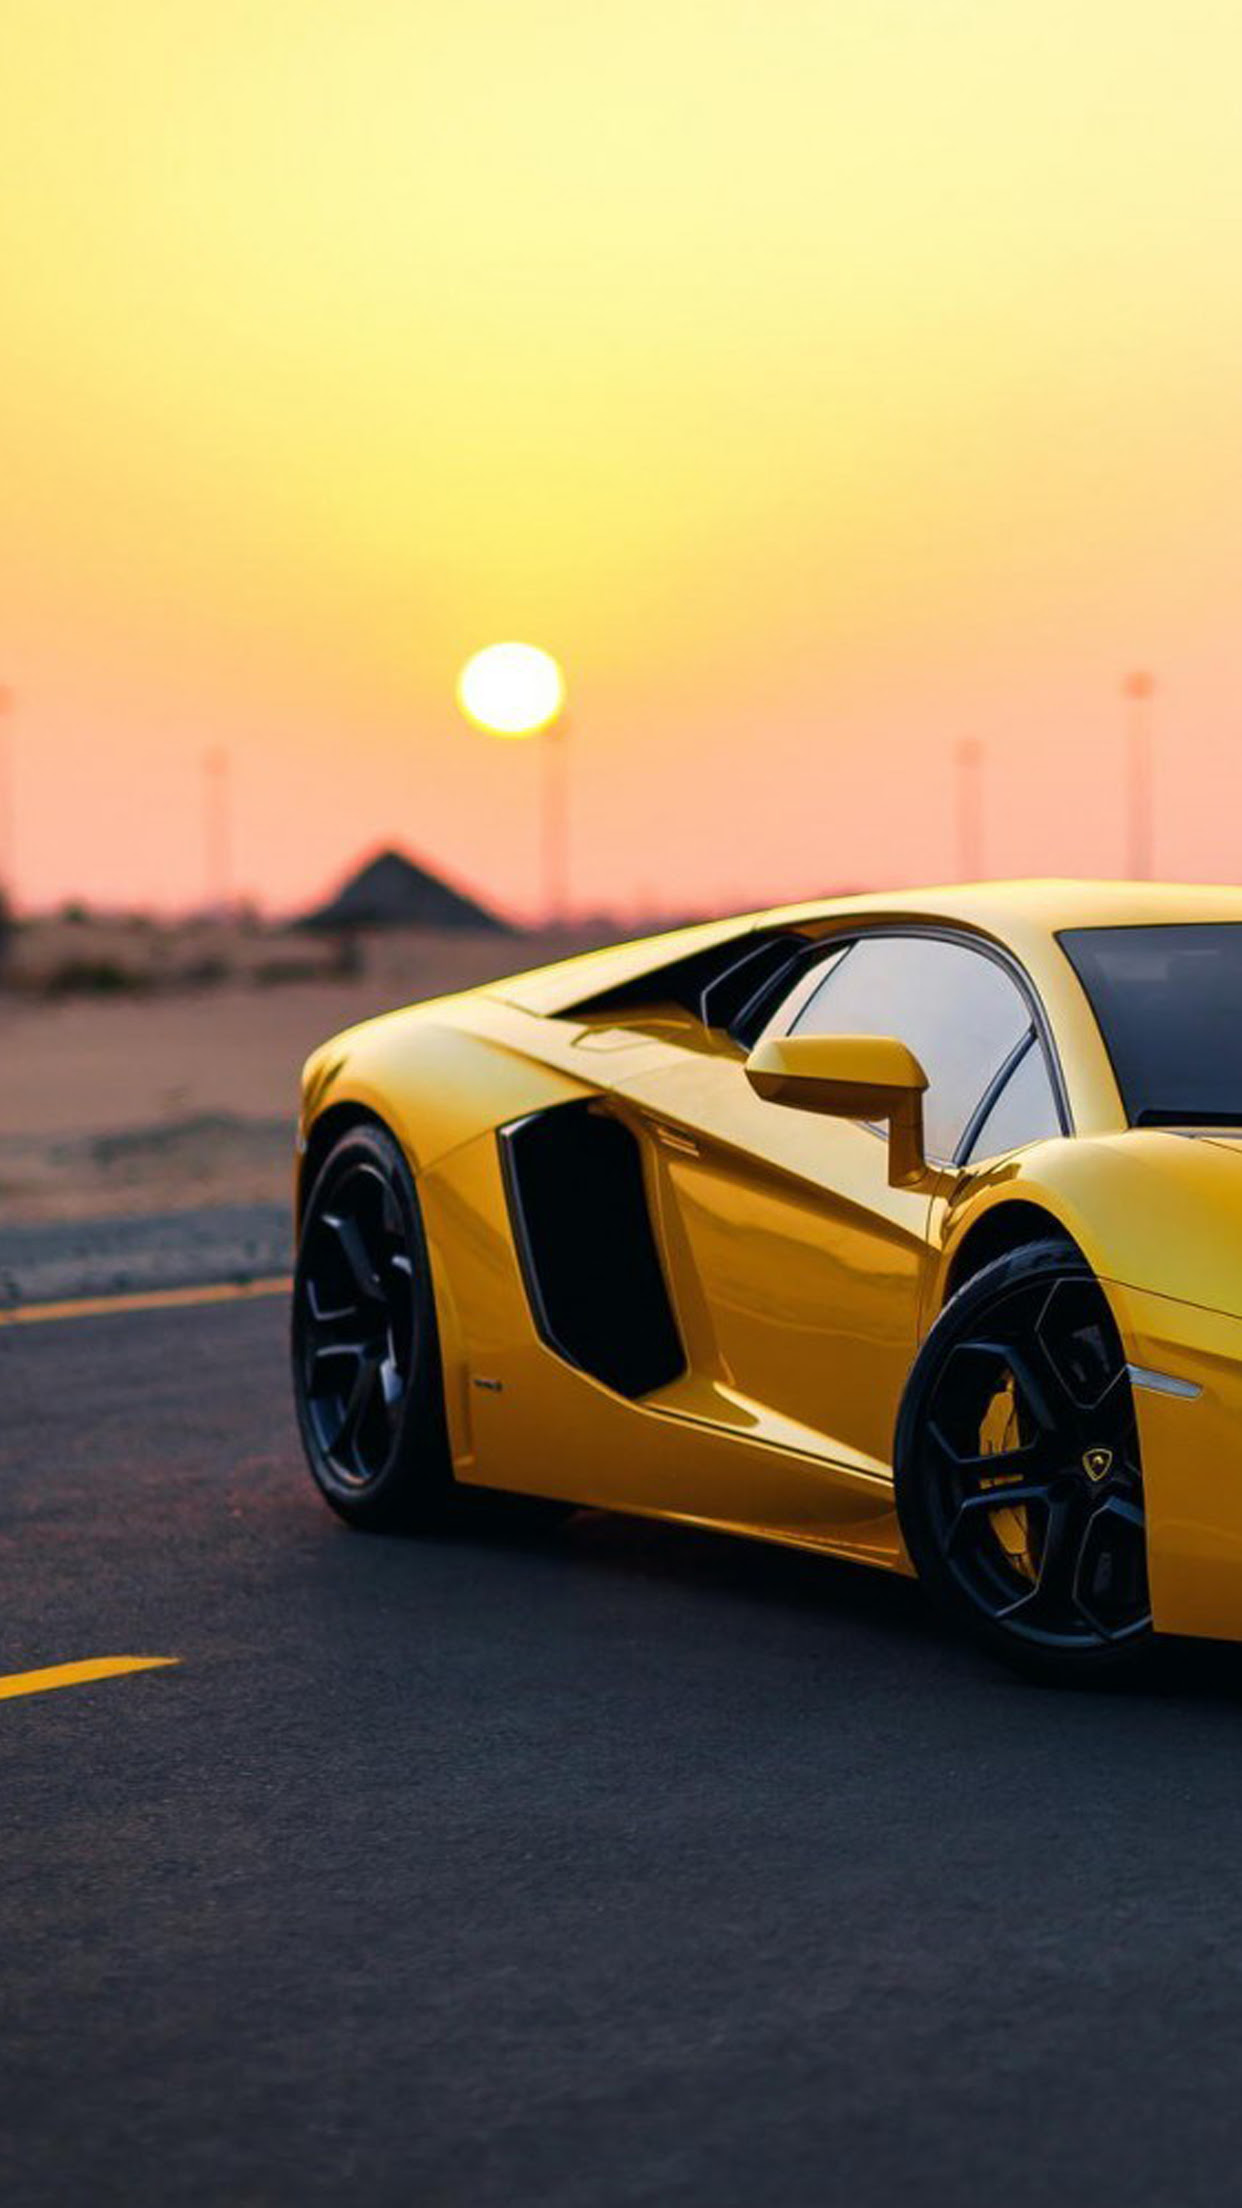 Supercar wallpapers for iPhone